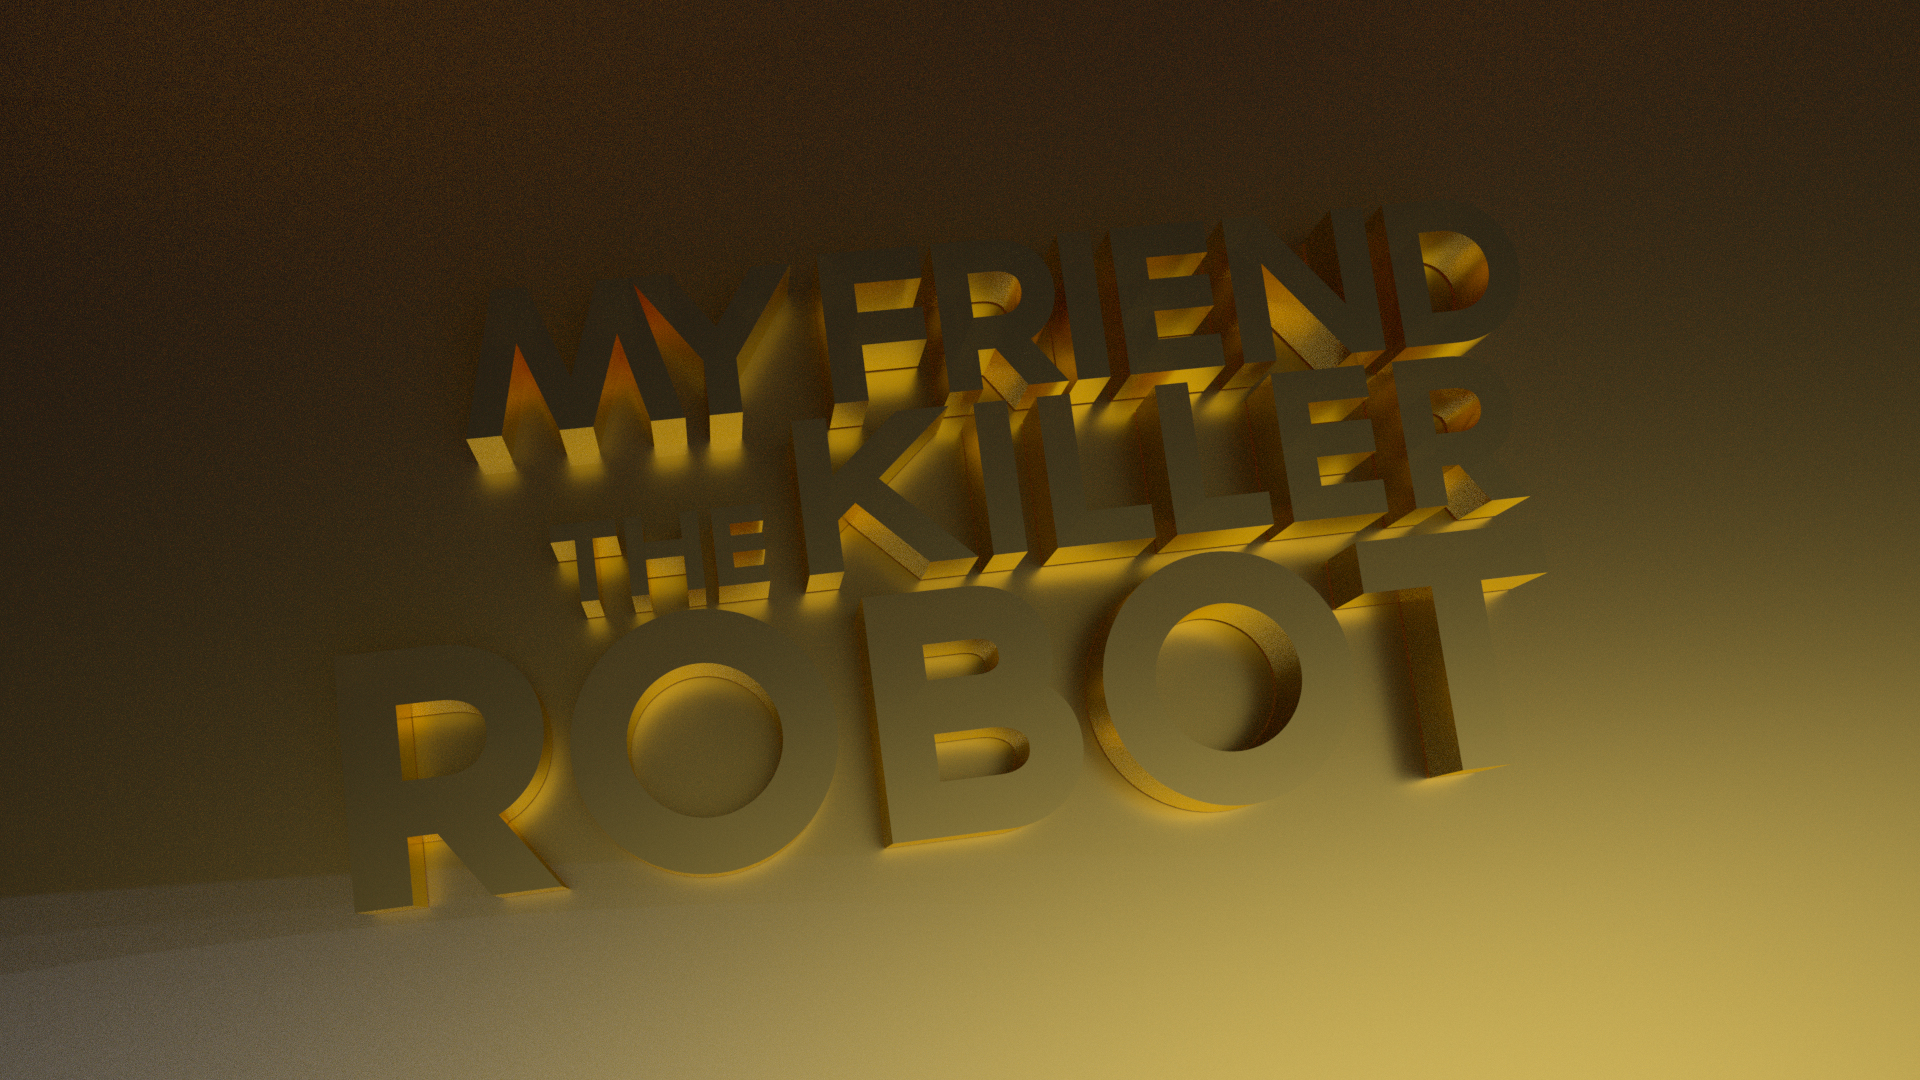 My Friend The Killer Robot Gold Text (Cinema 4D, Octane)